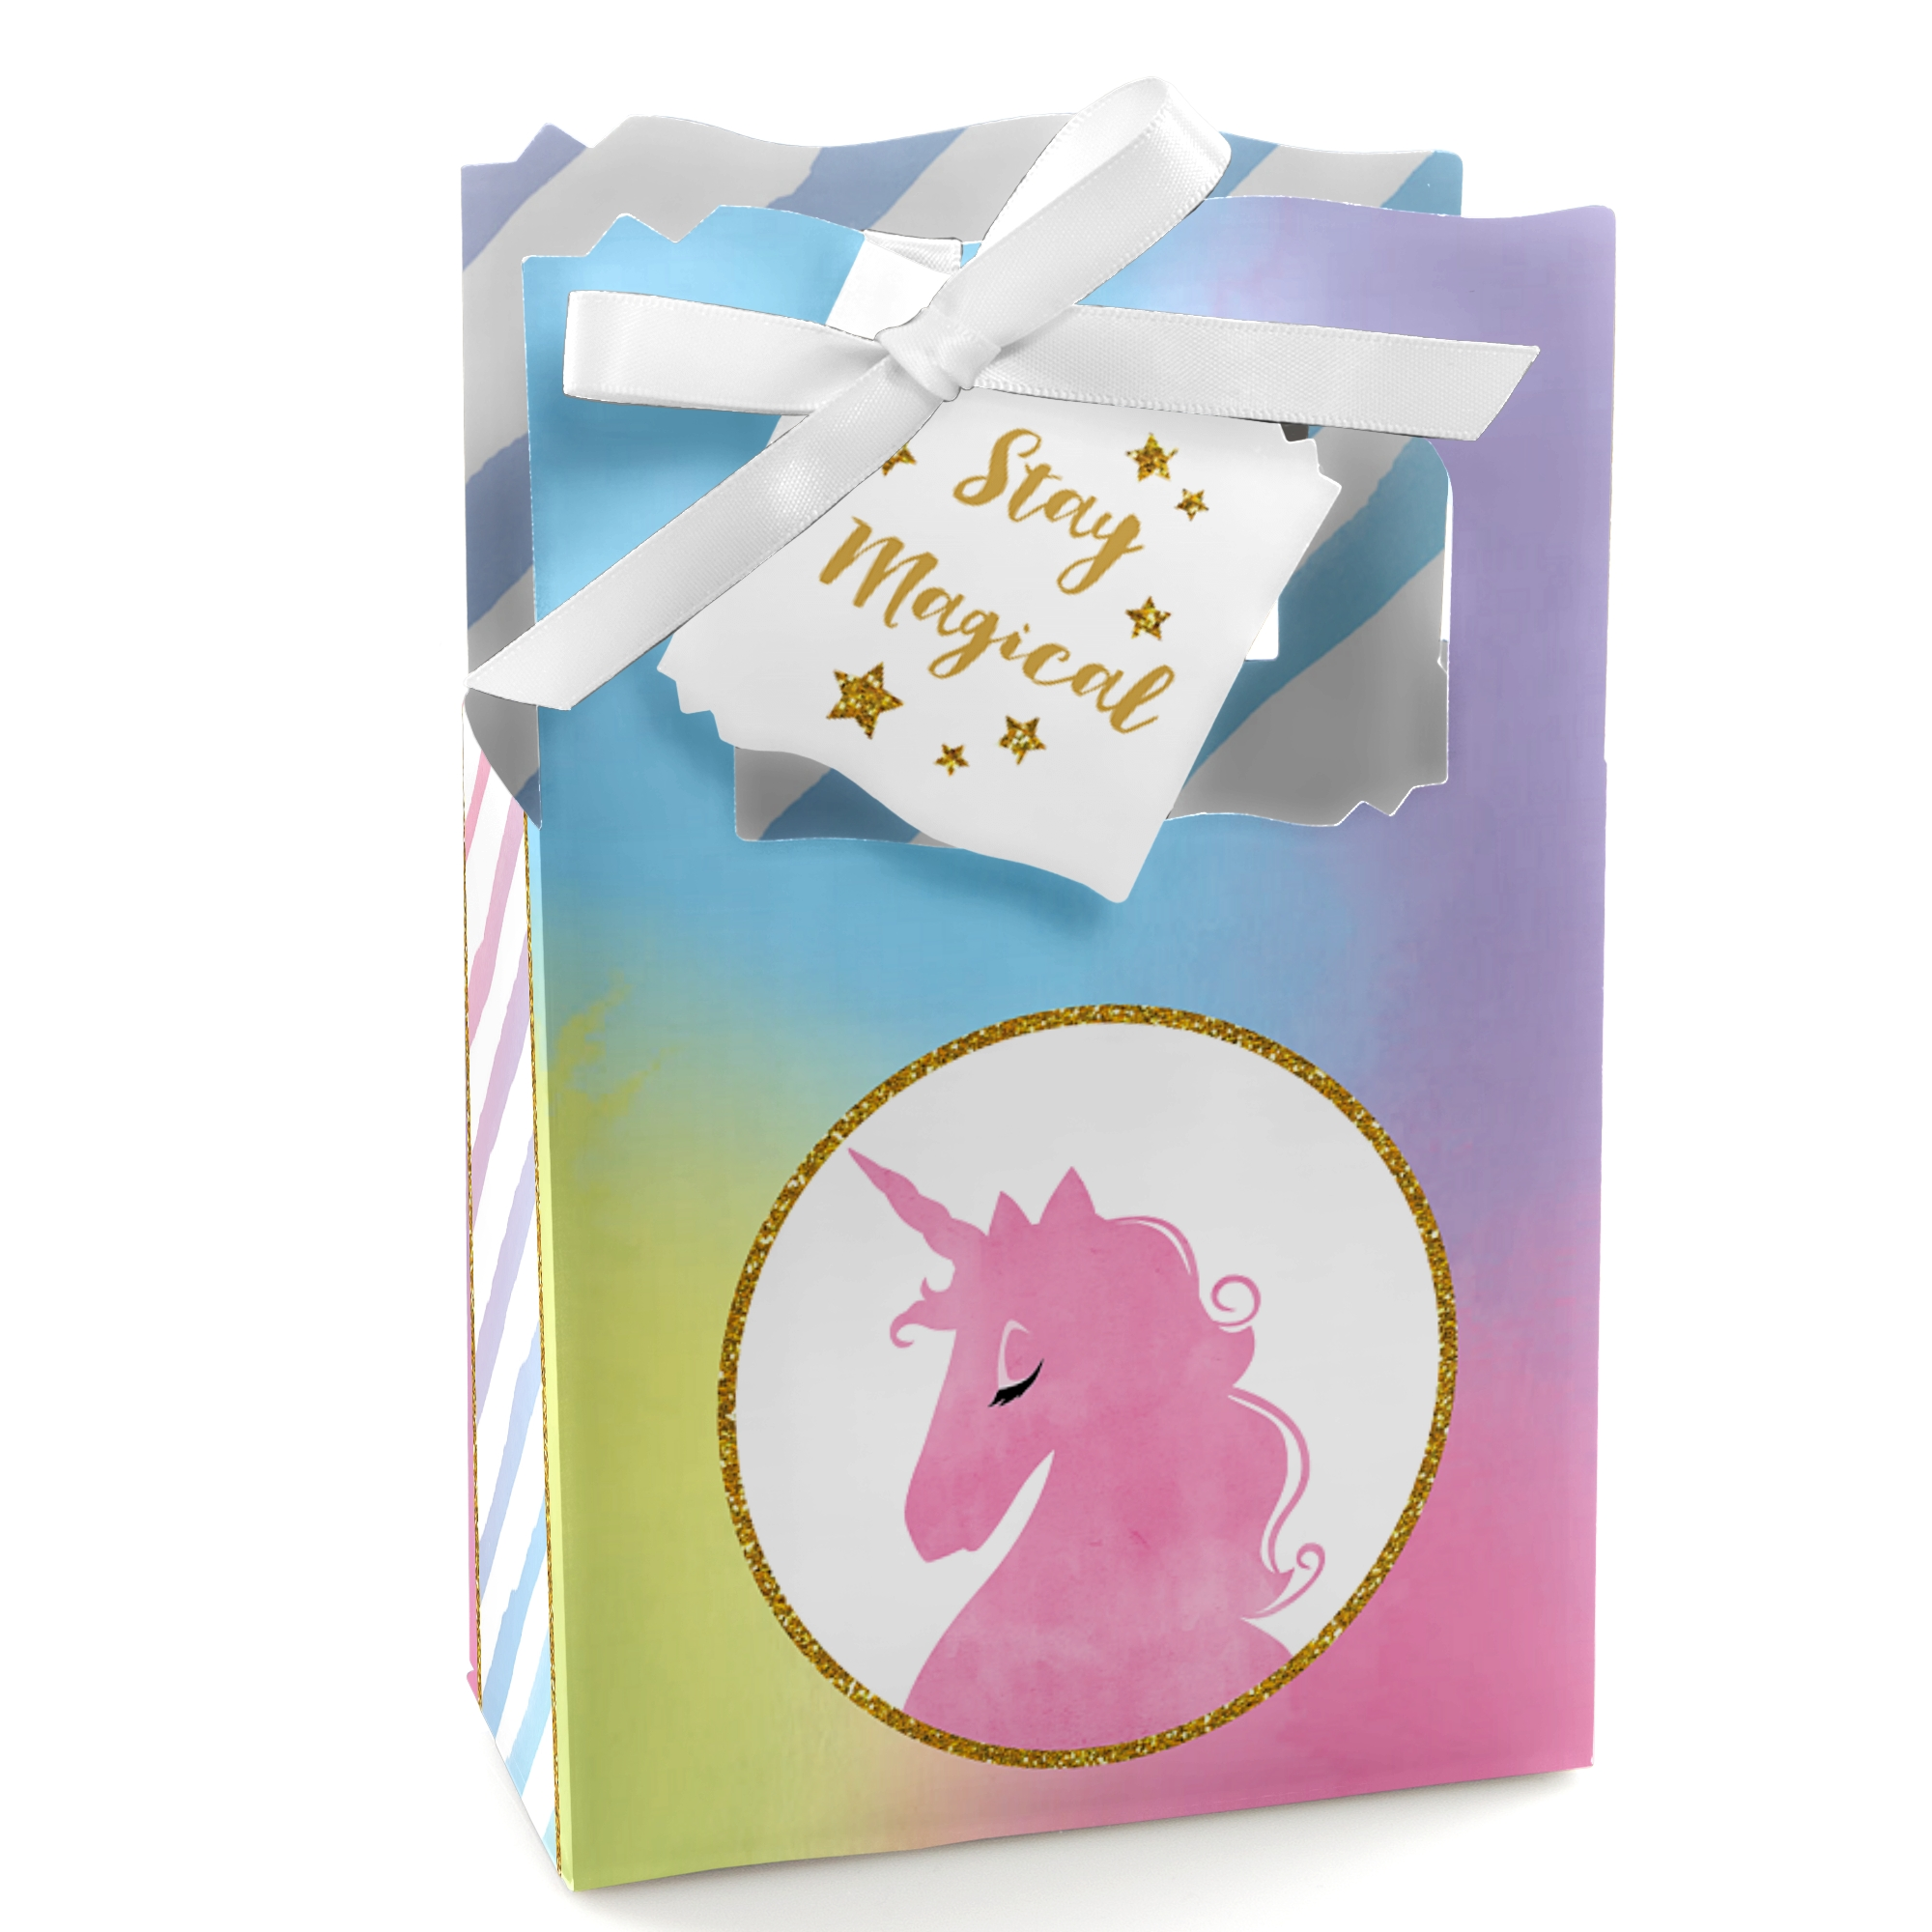 Rainbow Unicorn - Magical Unicorn Baby Shower or Birthday Party Favor Boxes - Set of 12